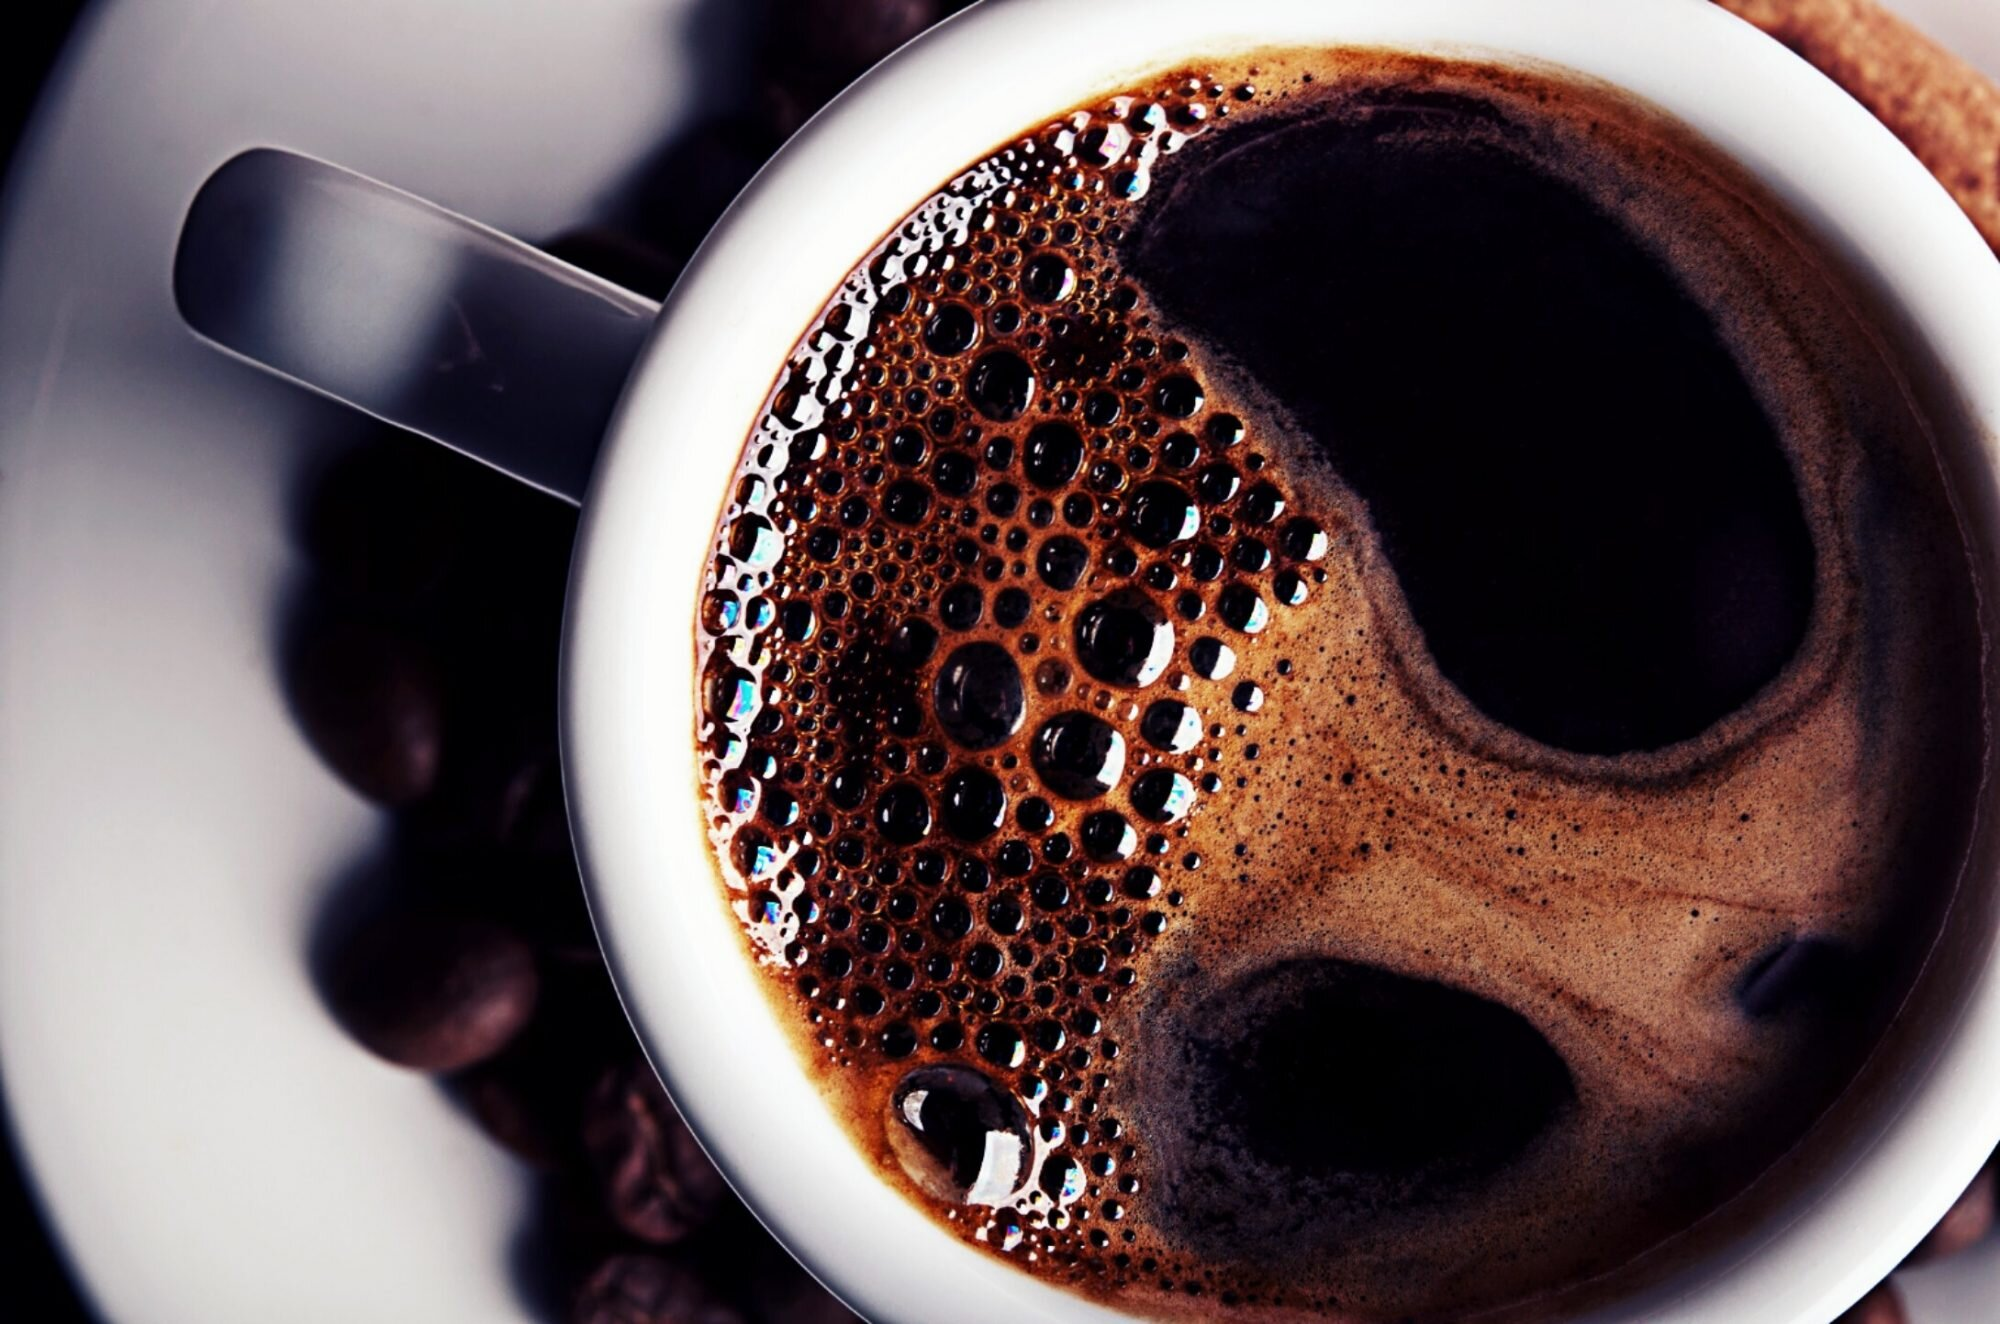 Analysis of 95 Studies Shows Up to Five Cups of Coffee a Day May Be GOOD for You